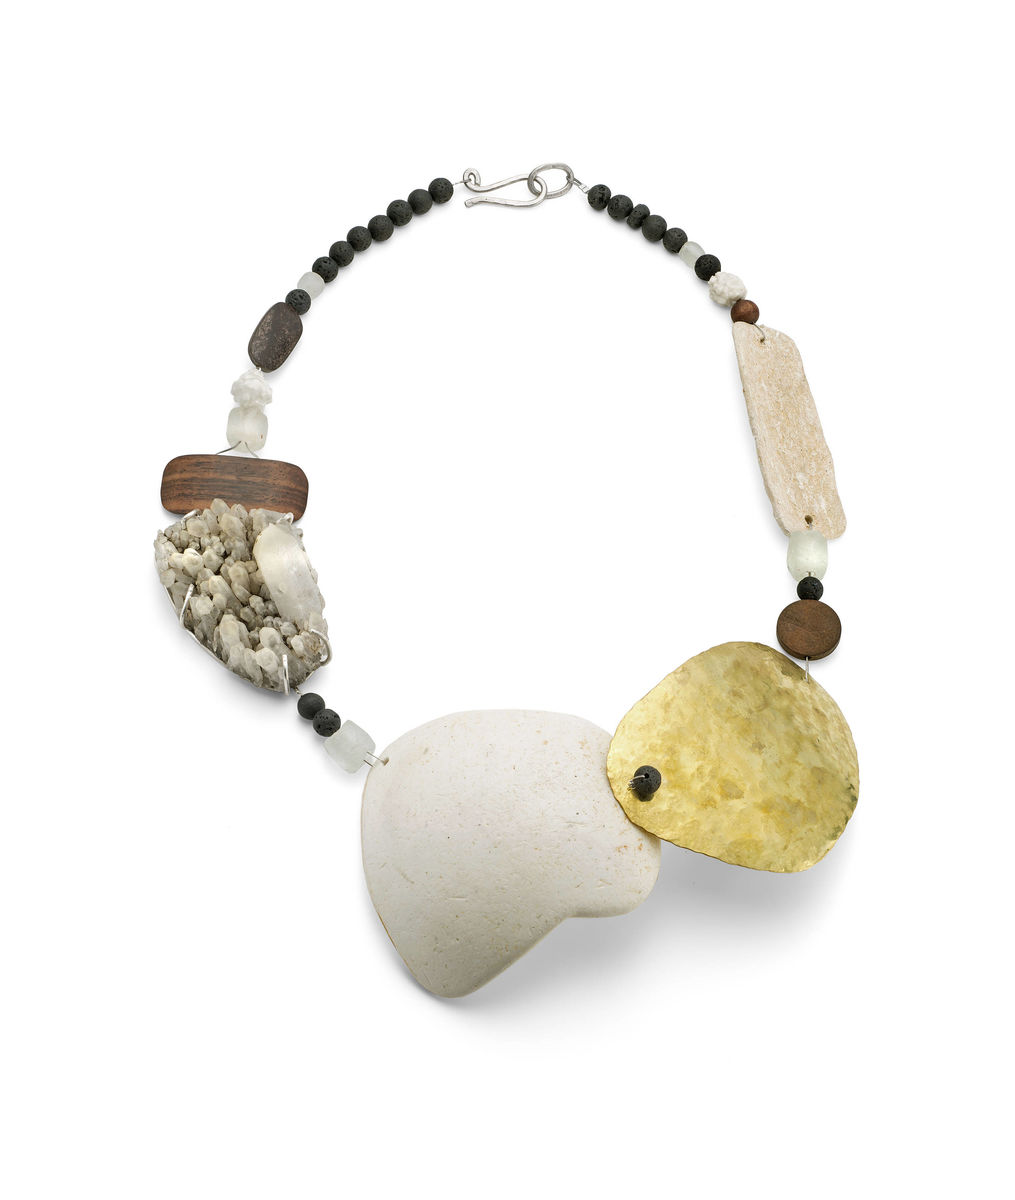 statement beach plastic collage necklace - product images  of